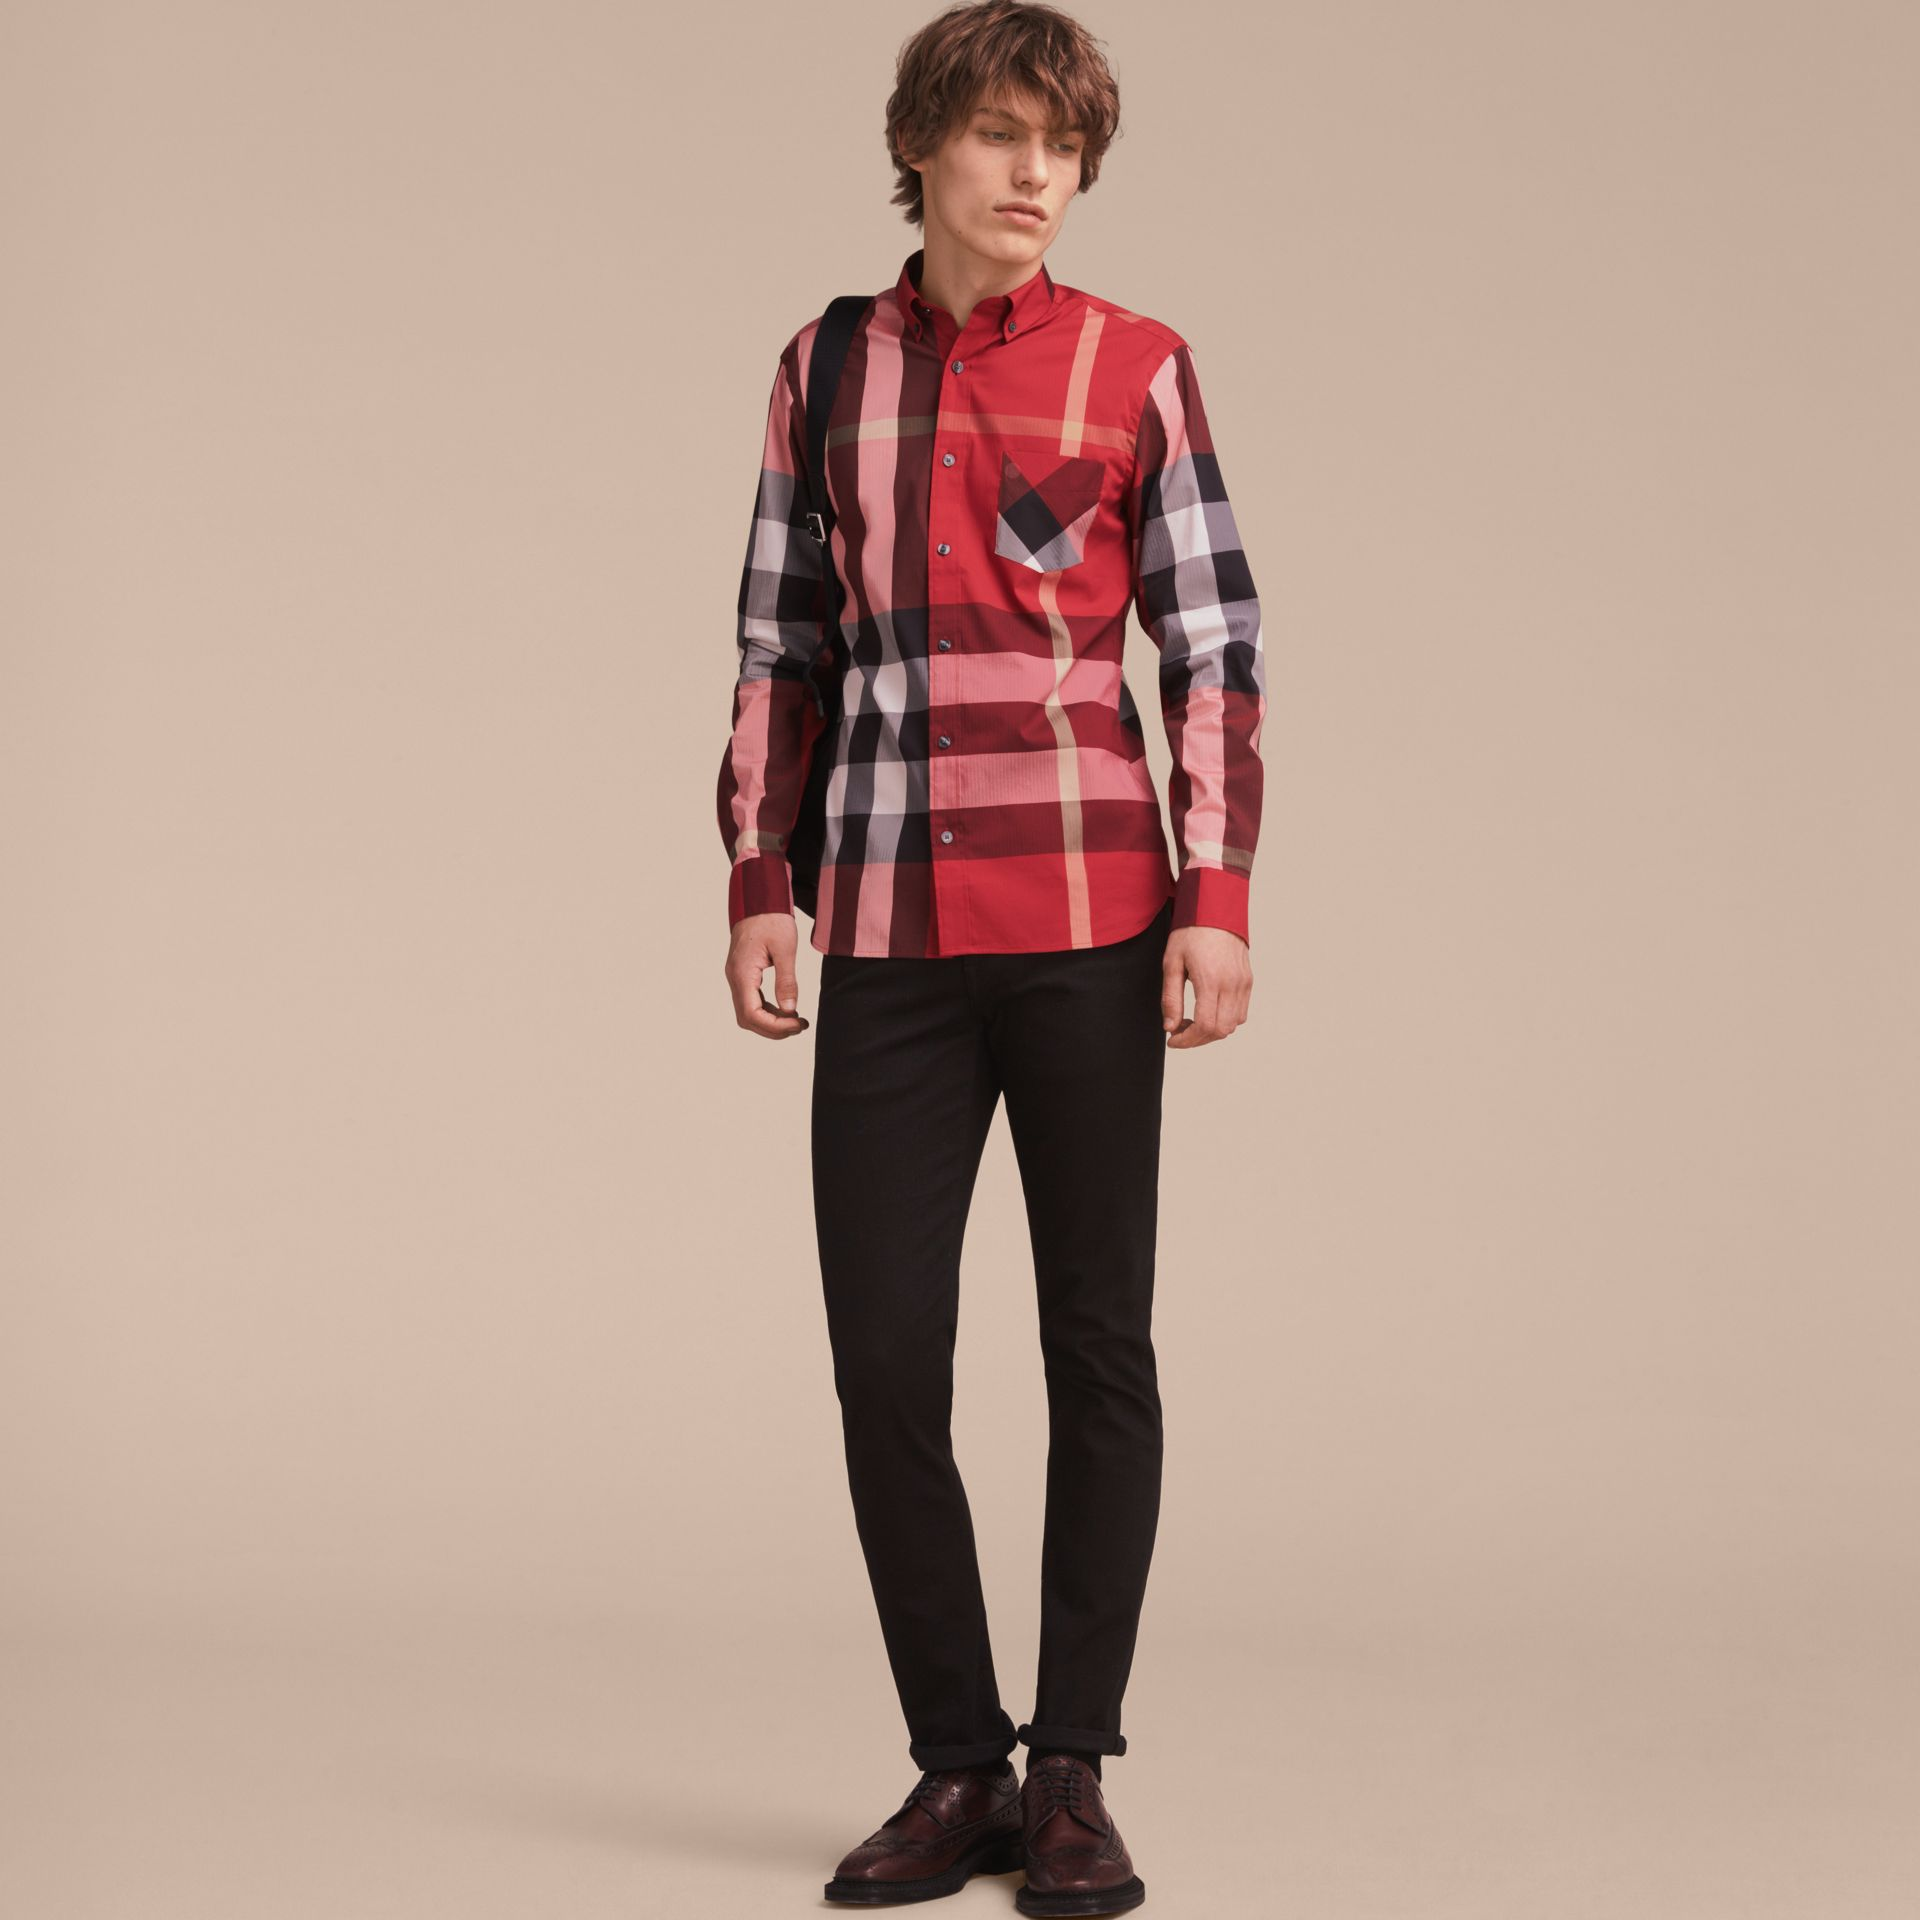 Button-down Collar Check Stretch Cotton Blend Shirt in Parade Red - Men | Burberry - gallery image 6